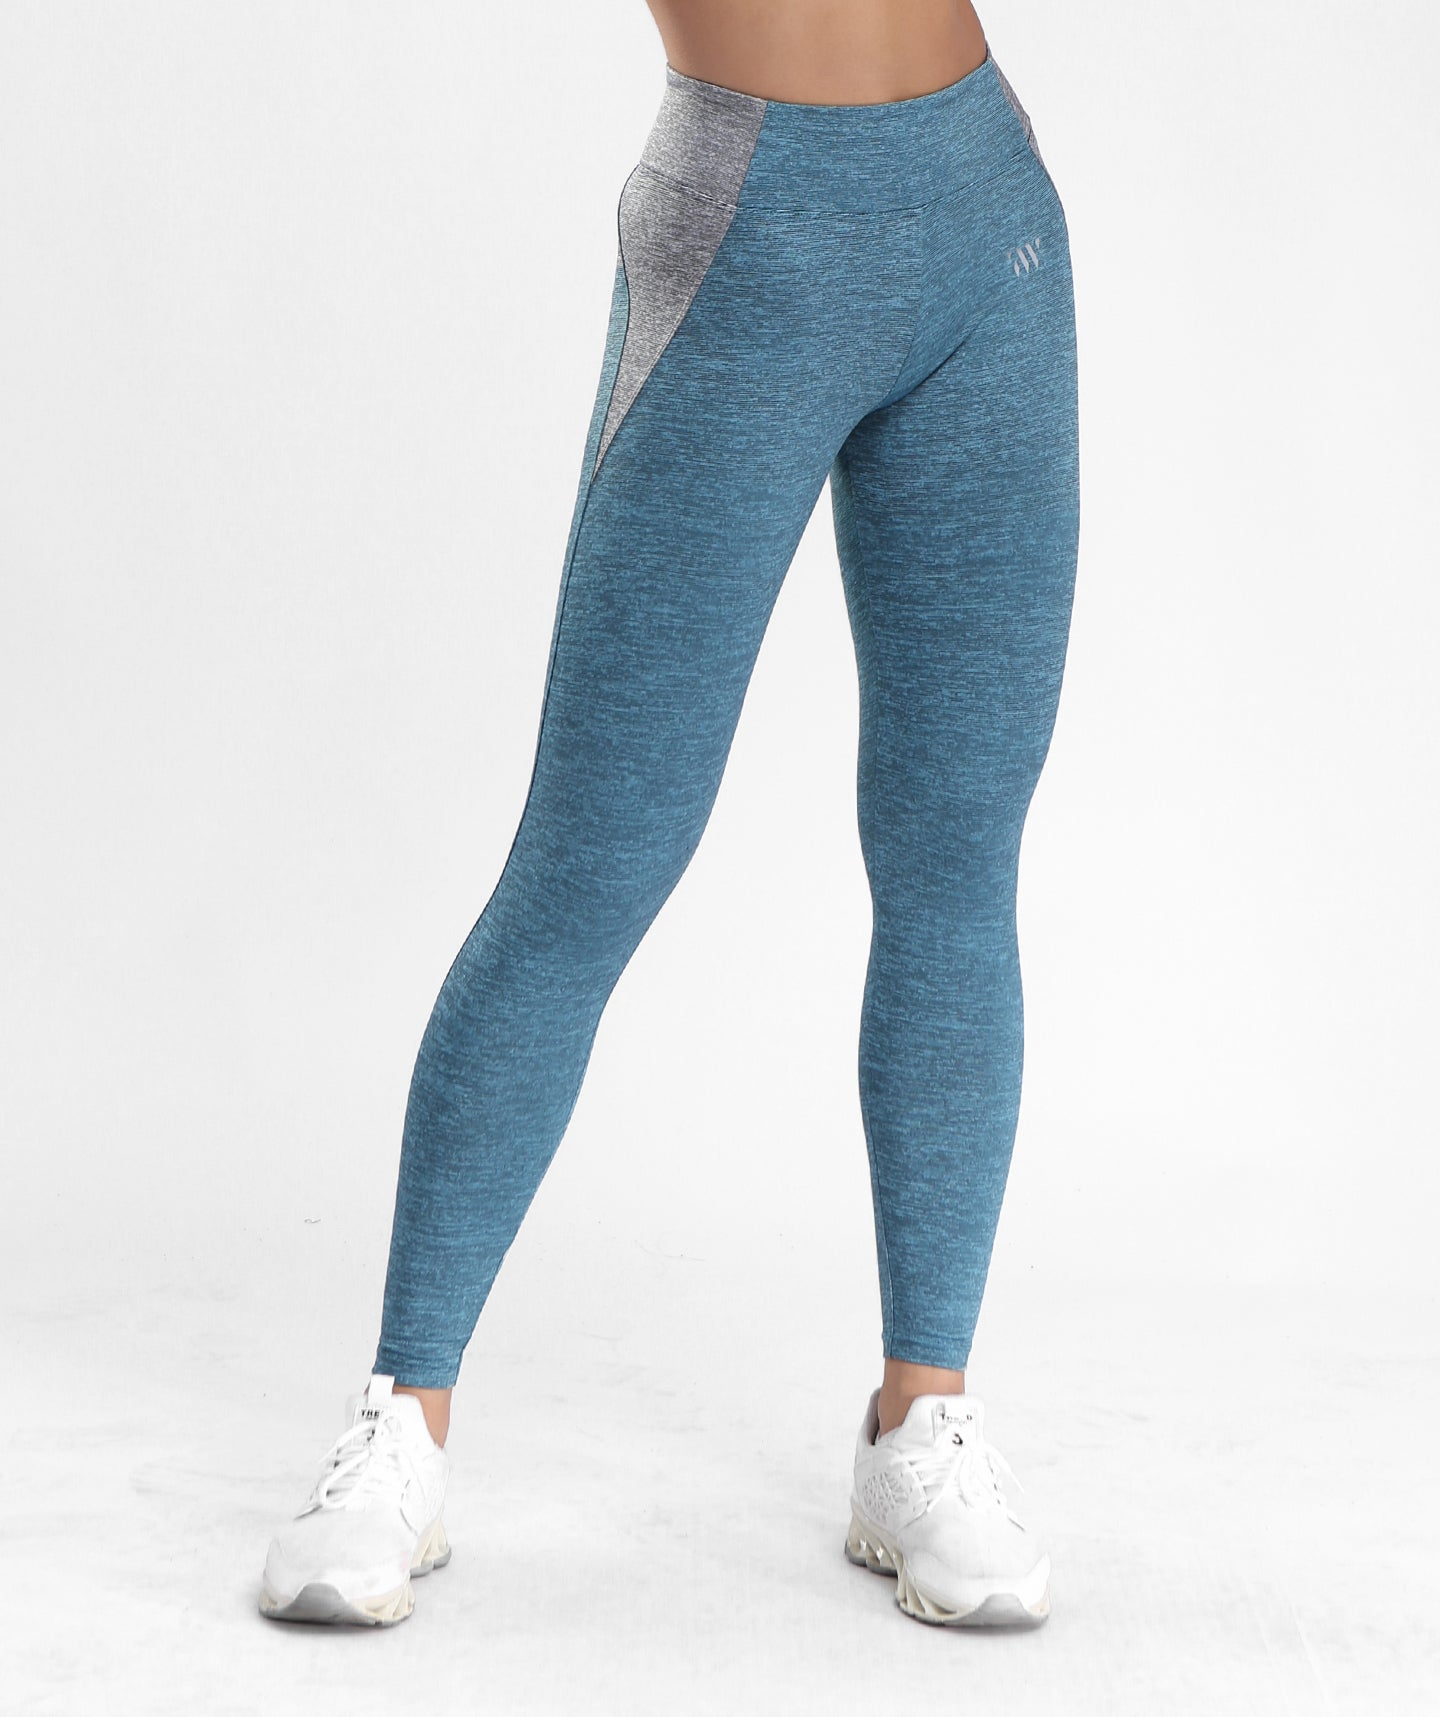 Inside Glamour Side Contrast Sports Leggings - Blue